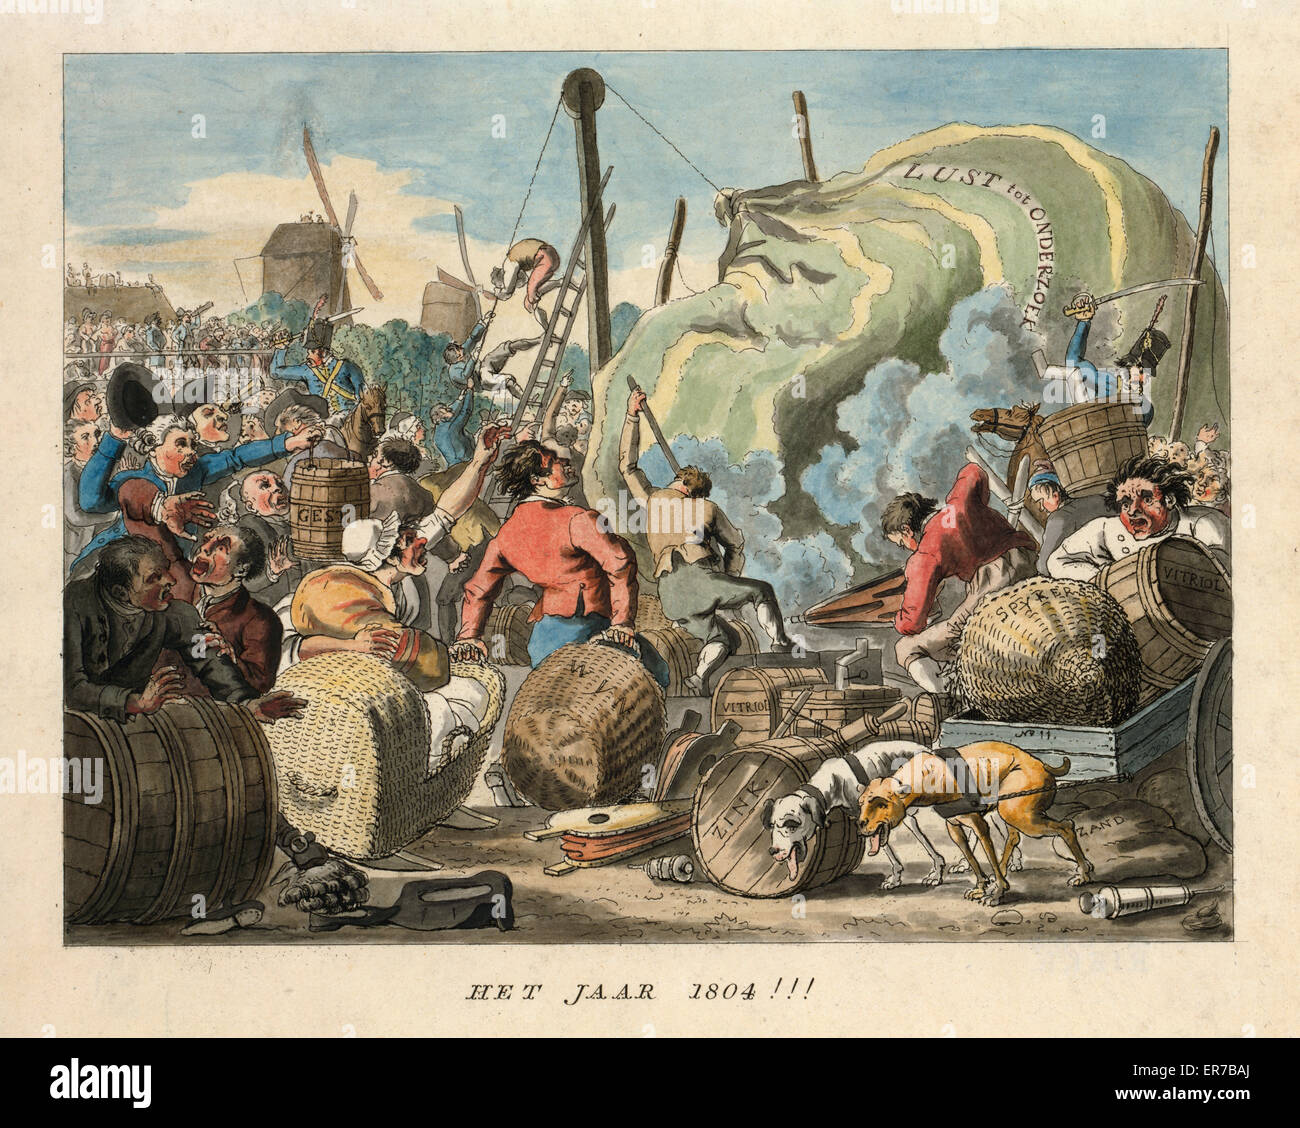 Het jaar 1804!!!. Dutch cartoon forecasts aeronautic events for the year 1804 by showing a scene at a failing balloon - Stock Image